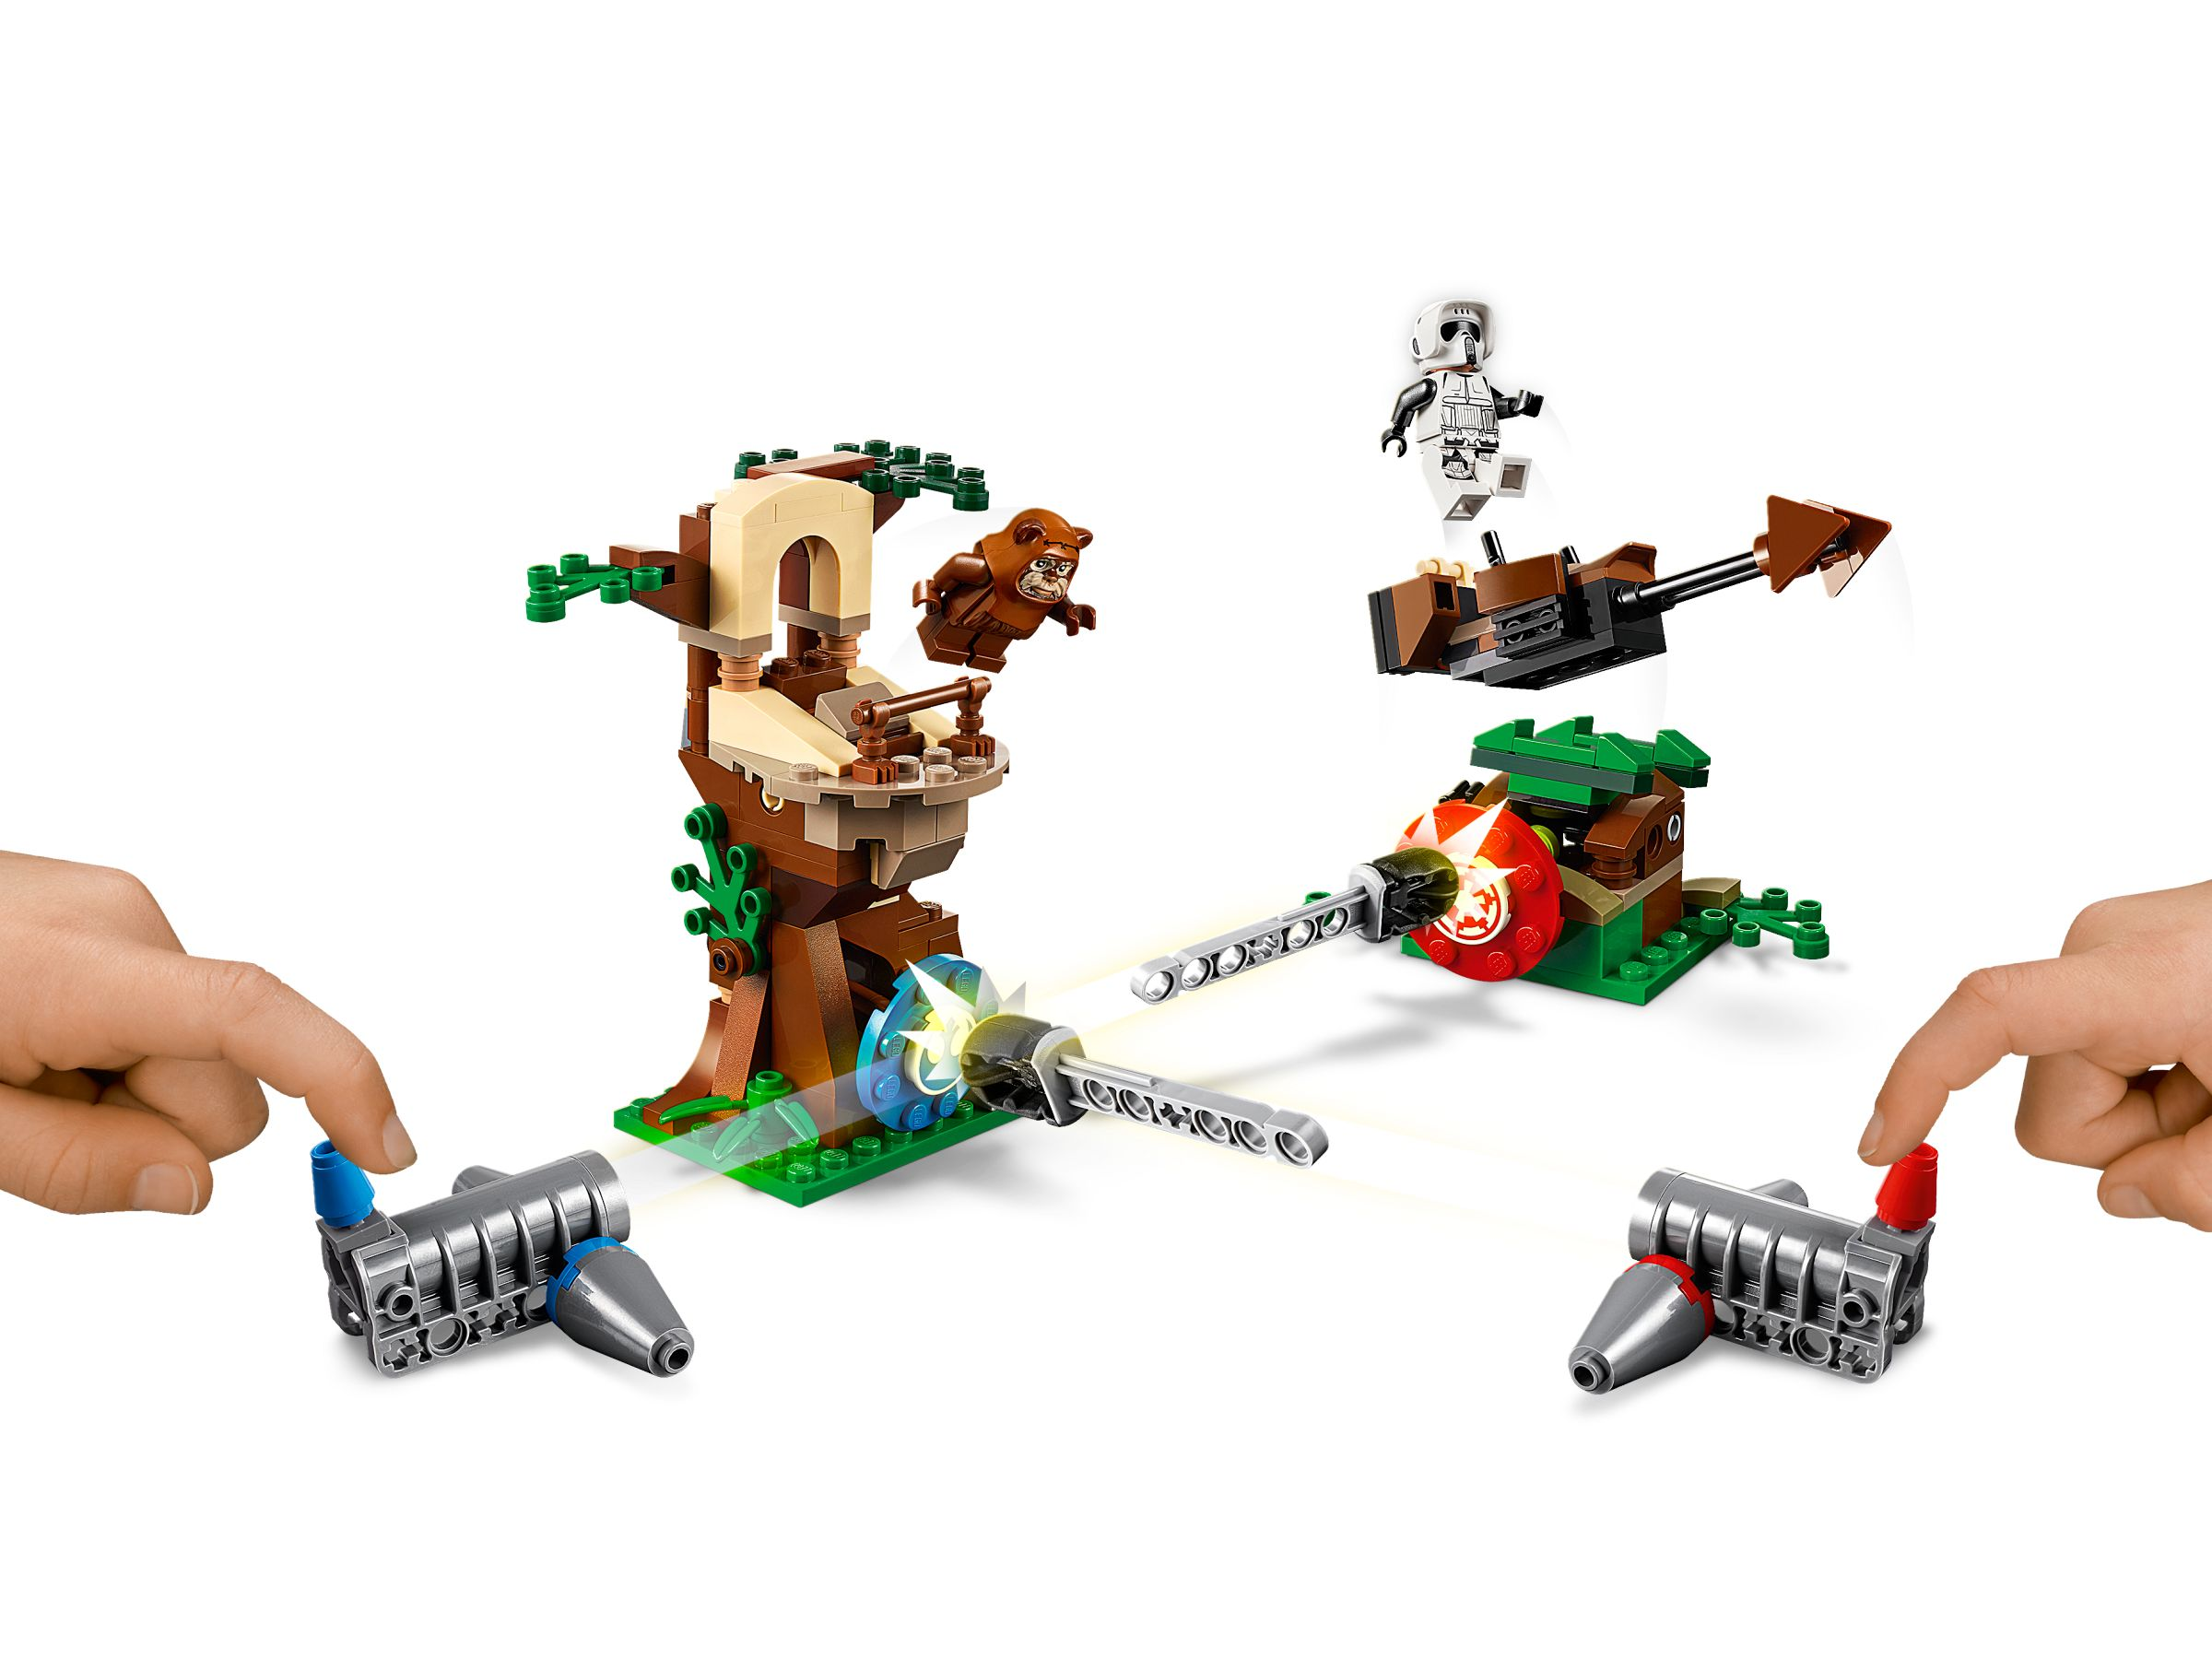 LEGO Star Wars 75238 Action Battle Endor™ Attacke LEGO_75238_alt2.jpg